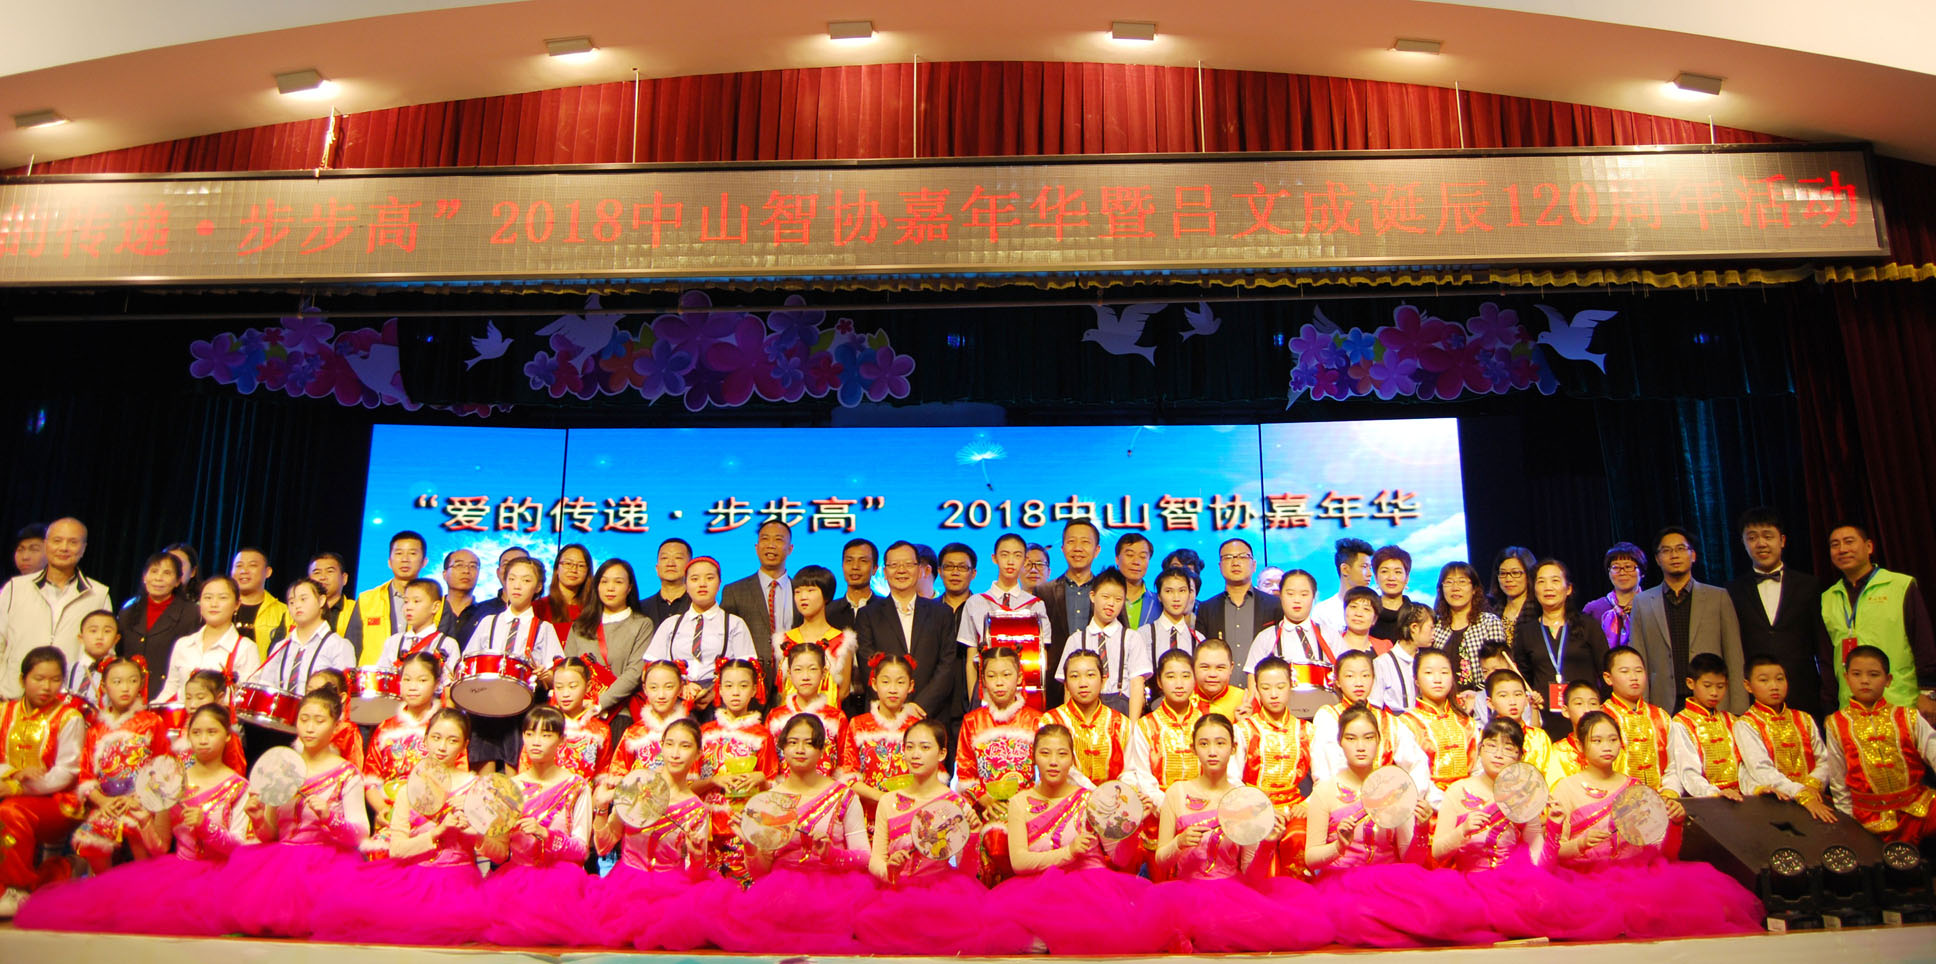 Toky participated in the 120th anniversary of the 2018 Zhongshan Zhixie Carnival and Lu Wencheng's birthday